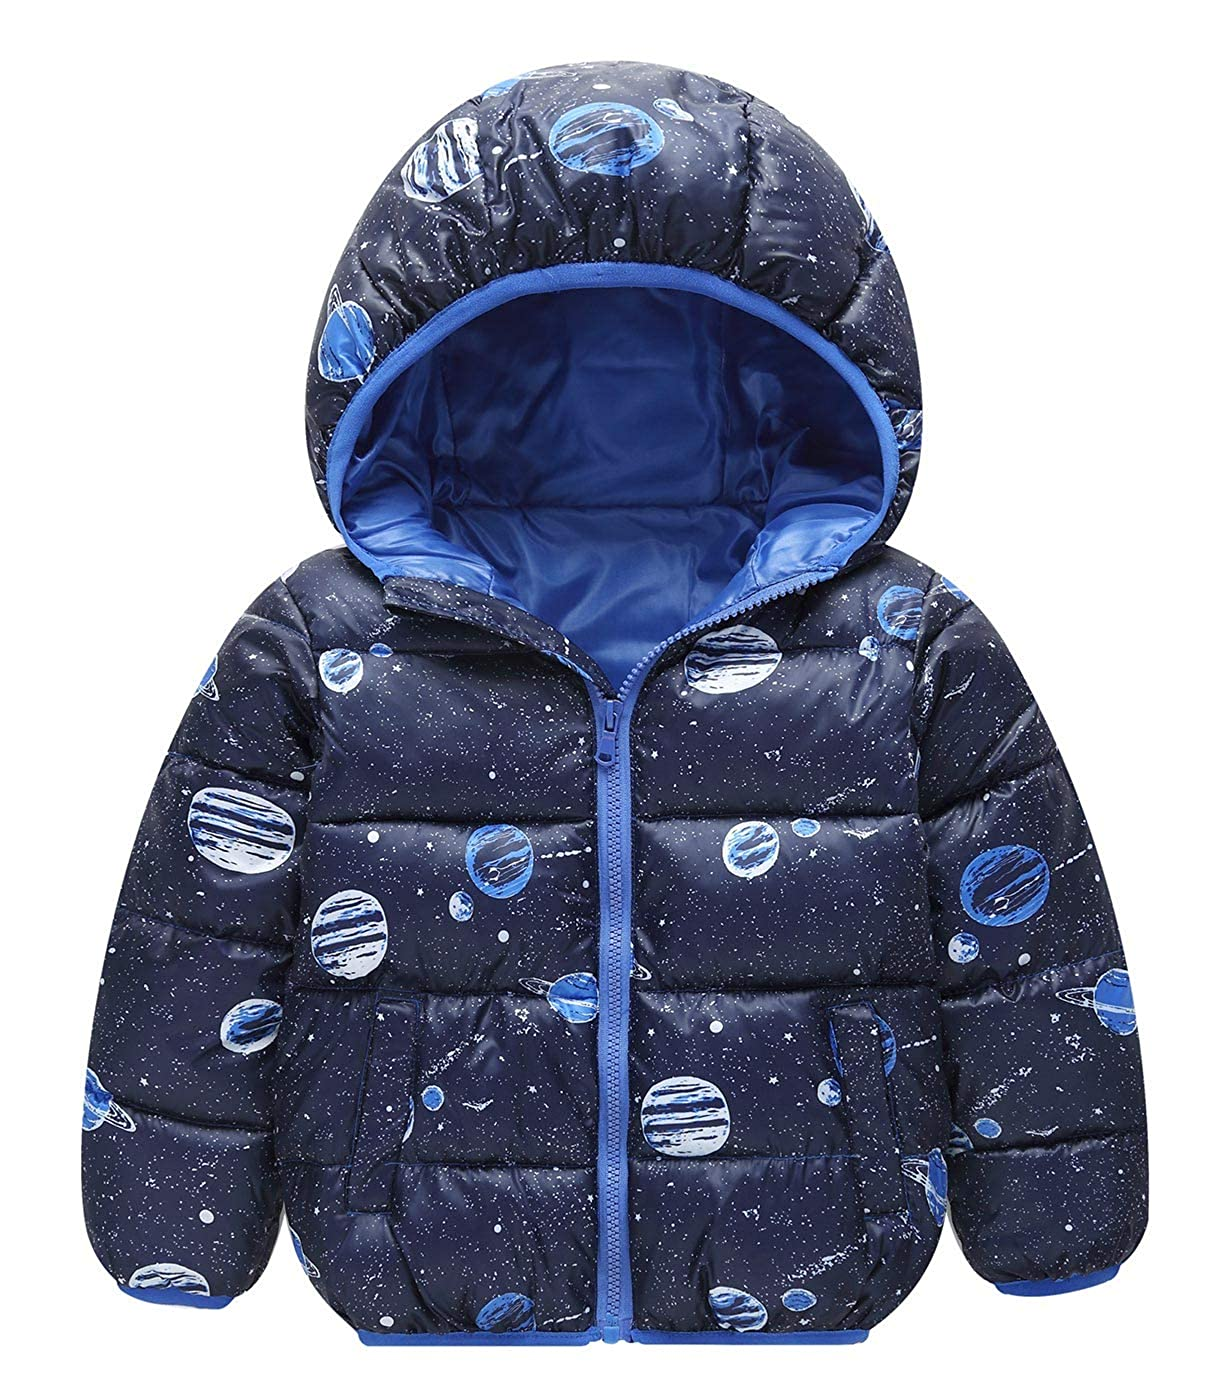 b3b41264f Jackets   Coats   Online Shopping for Clothing